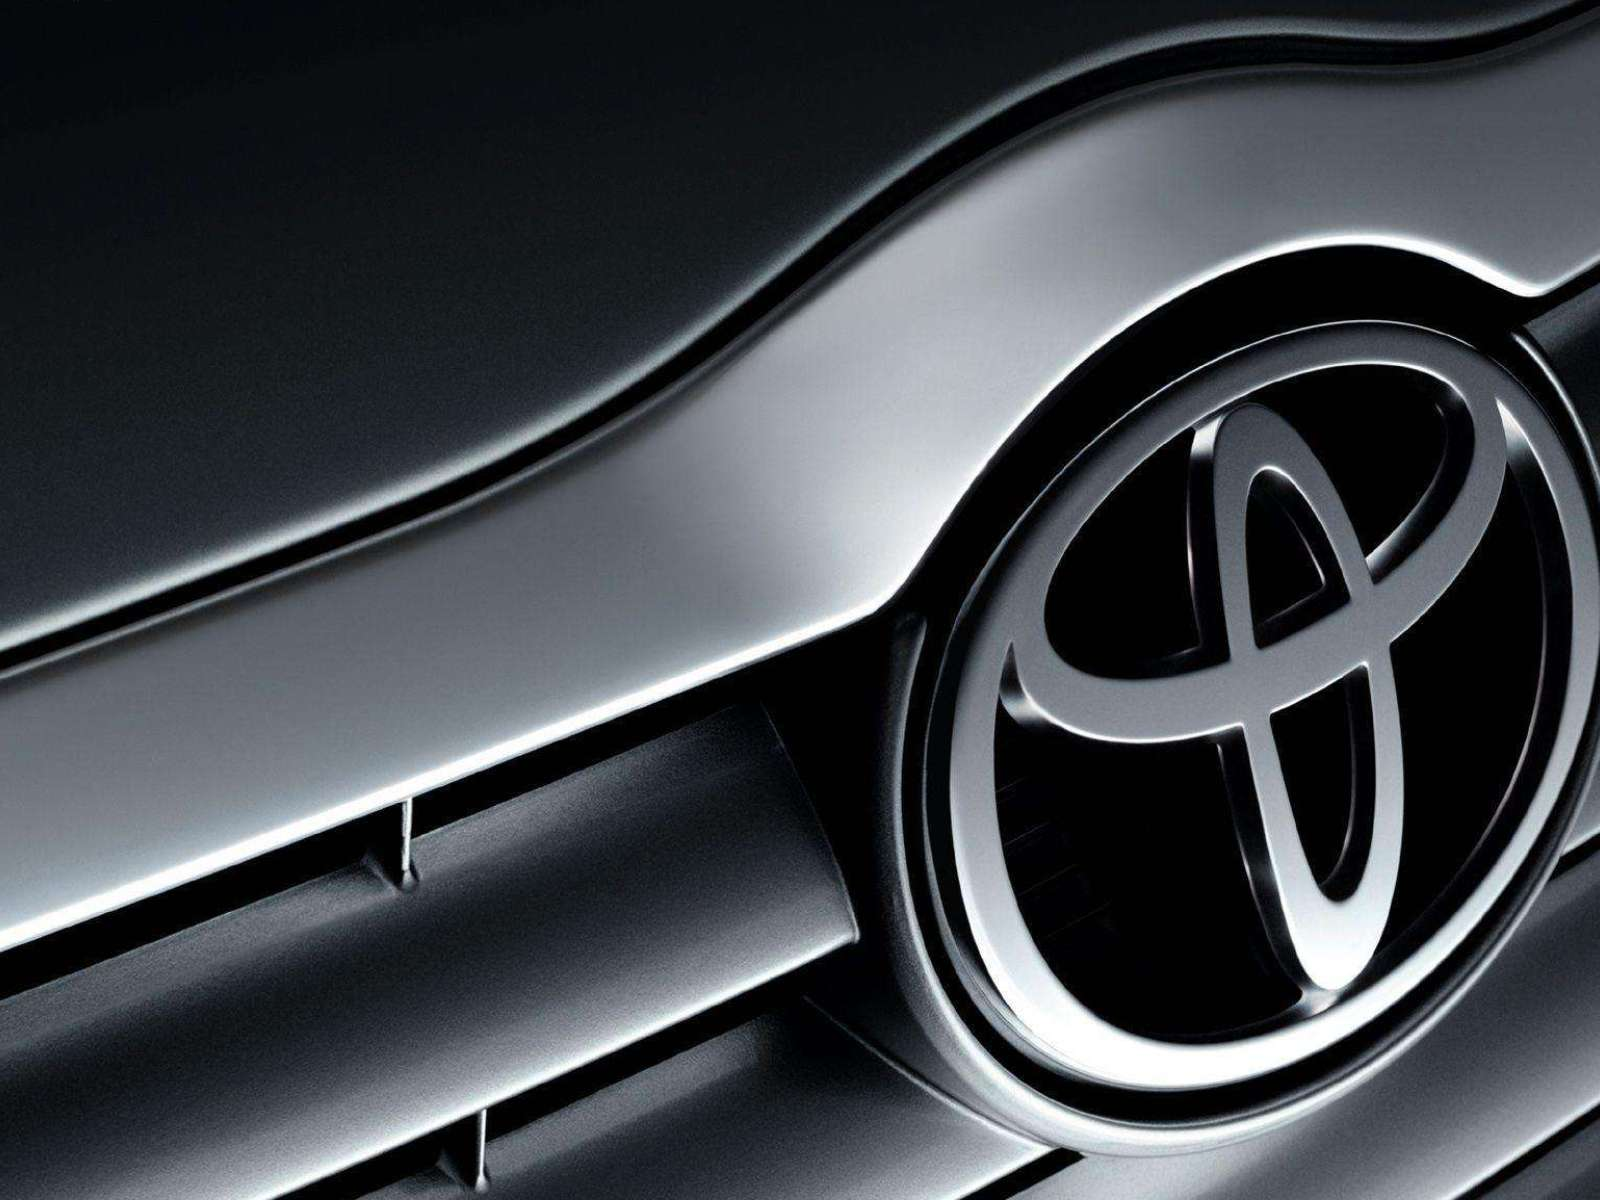 Toyota Grille Logo Wallpaper - Free Download Wallpaper from ...